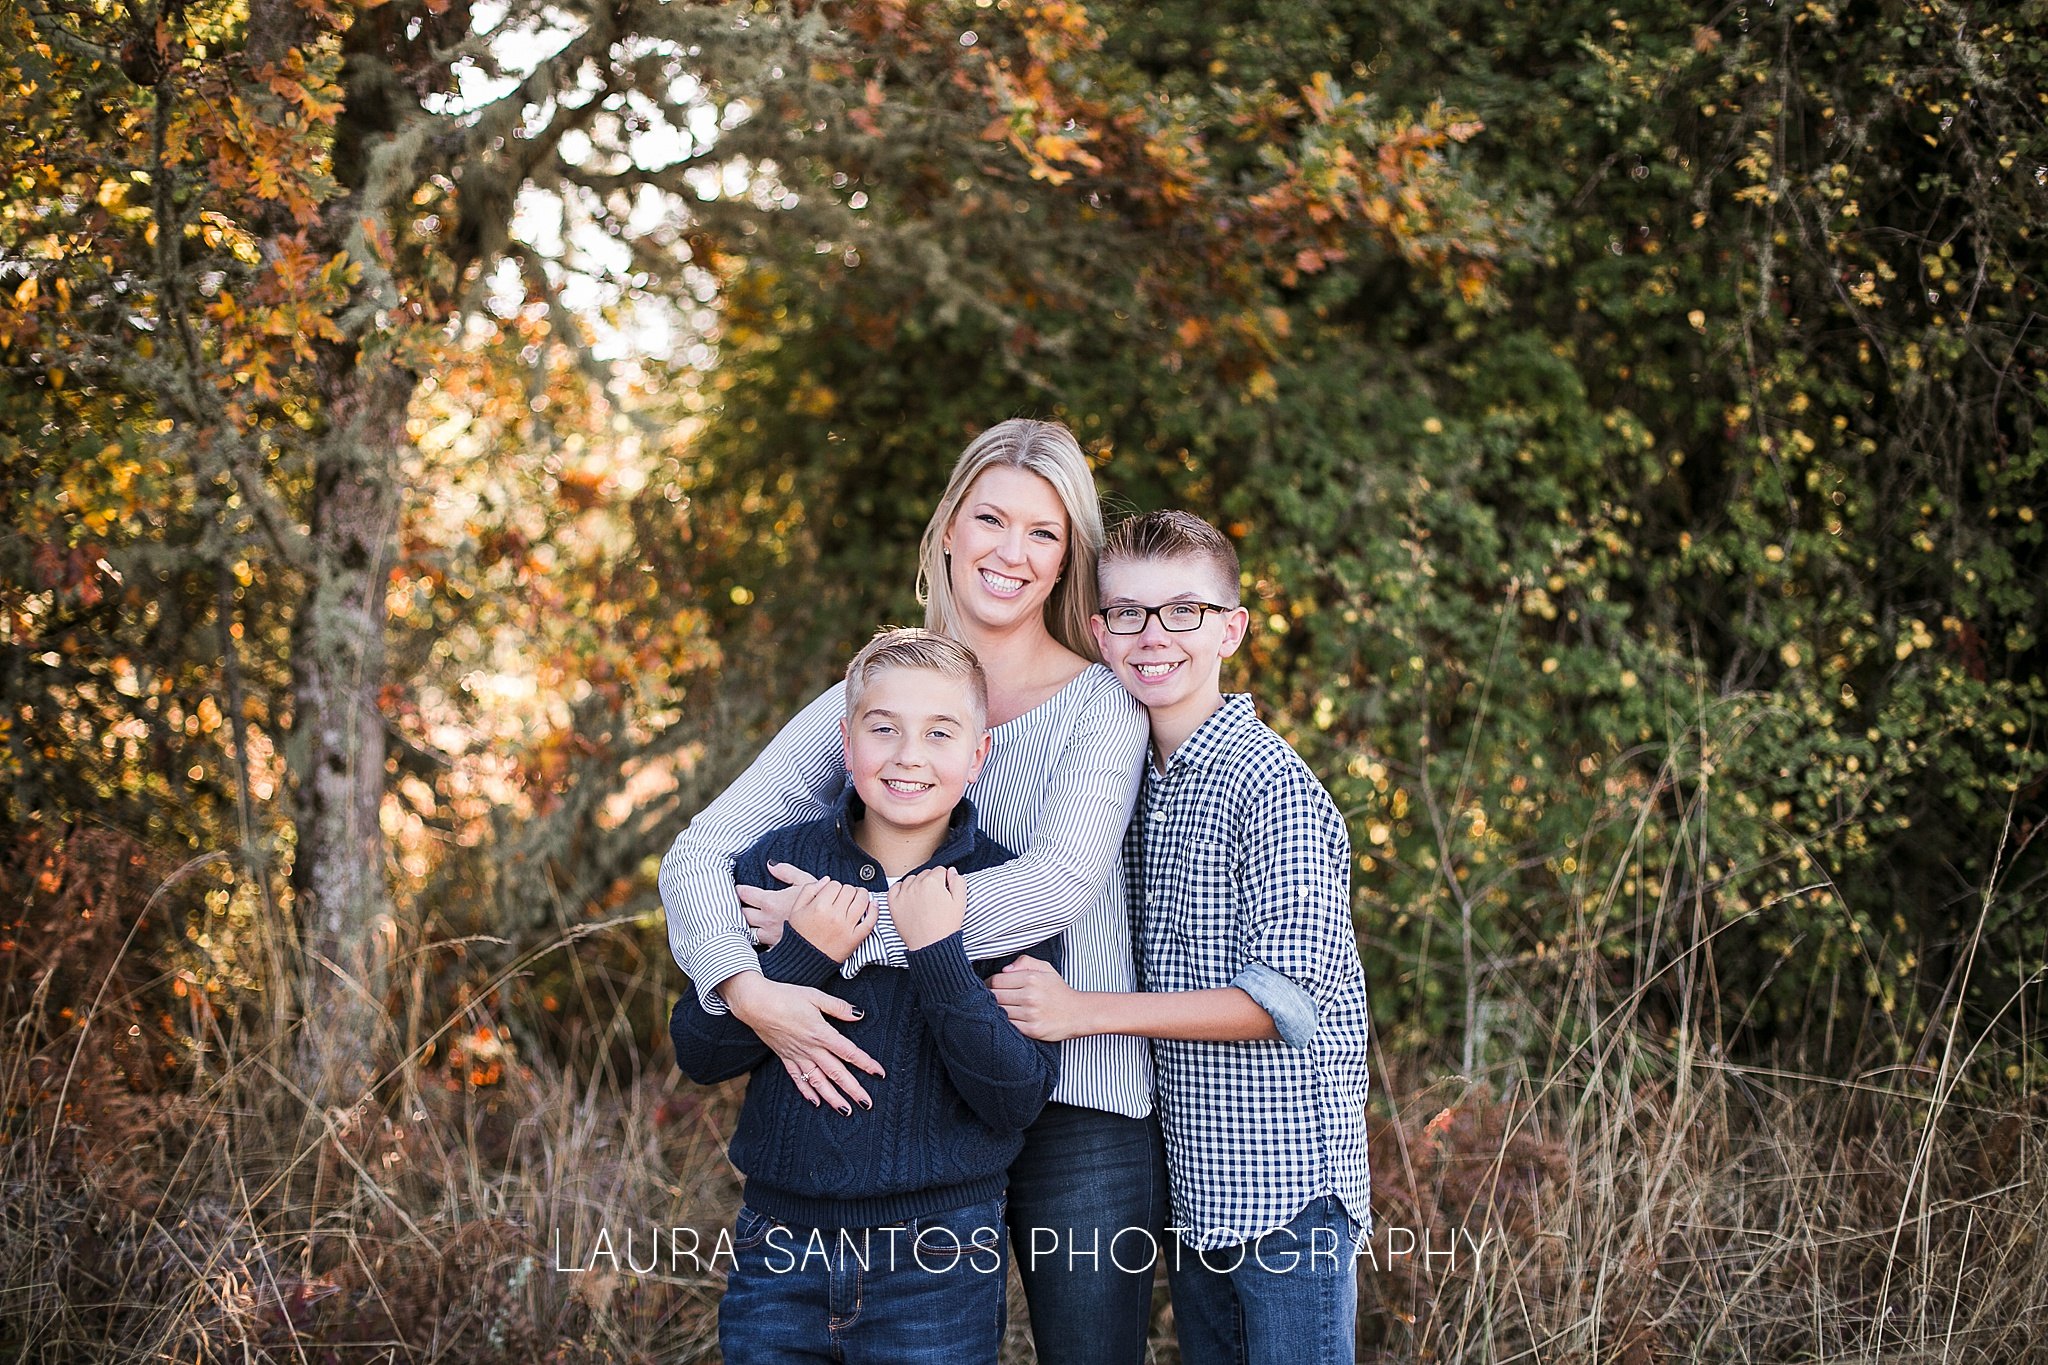 Laura Santos Photography Portland Oregon Family Photographer_0616.jpg